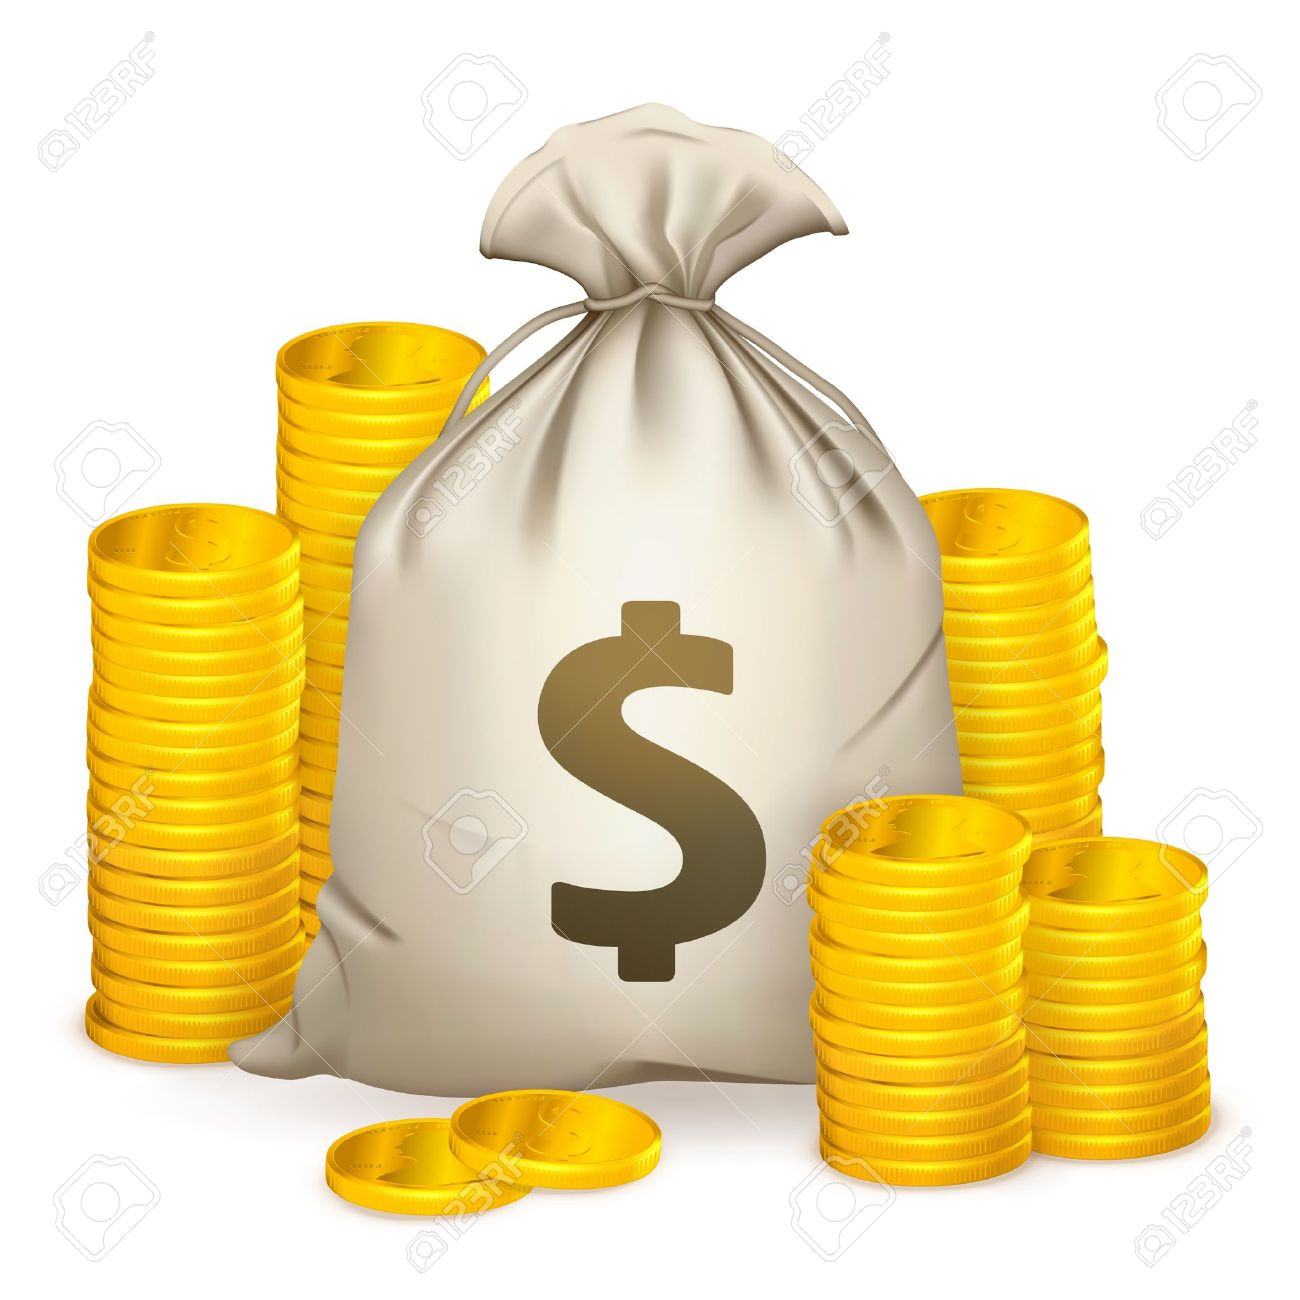 Stacks of coins and money bag - 13798360